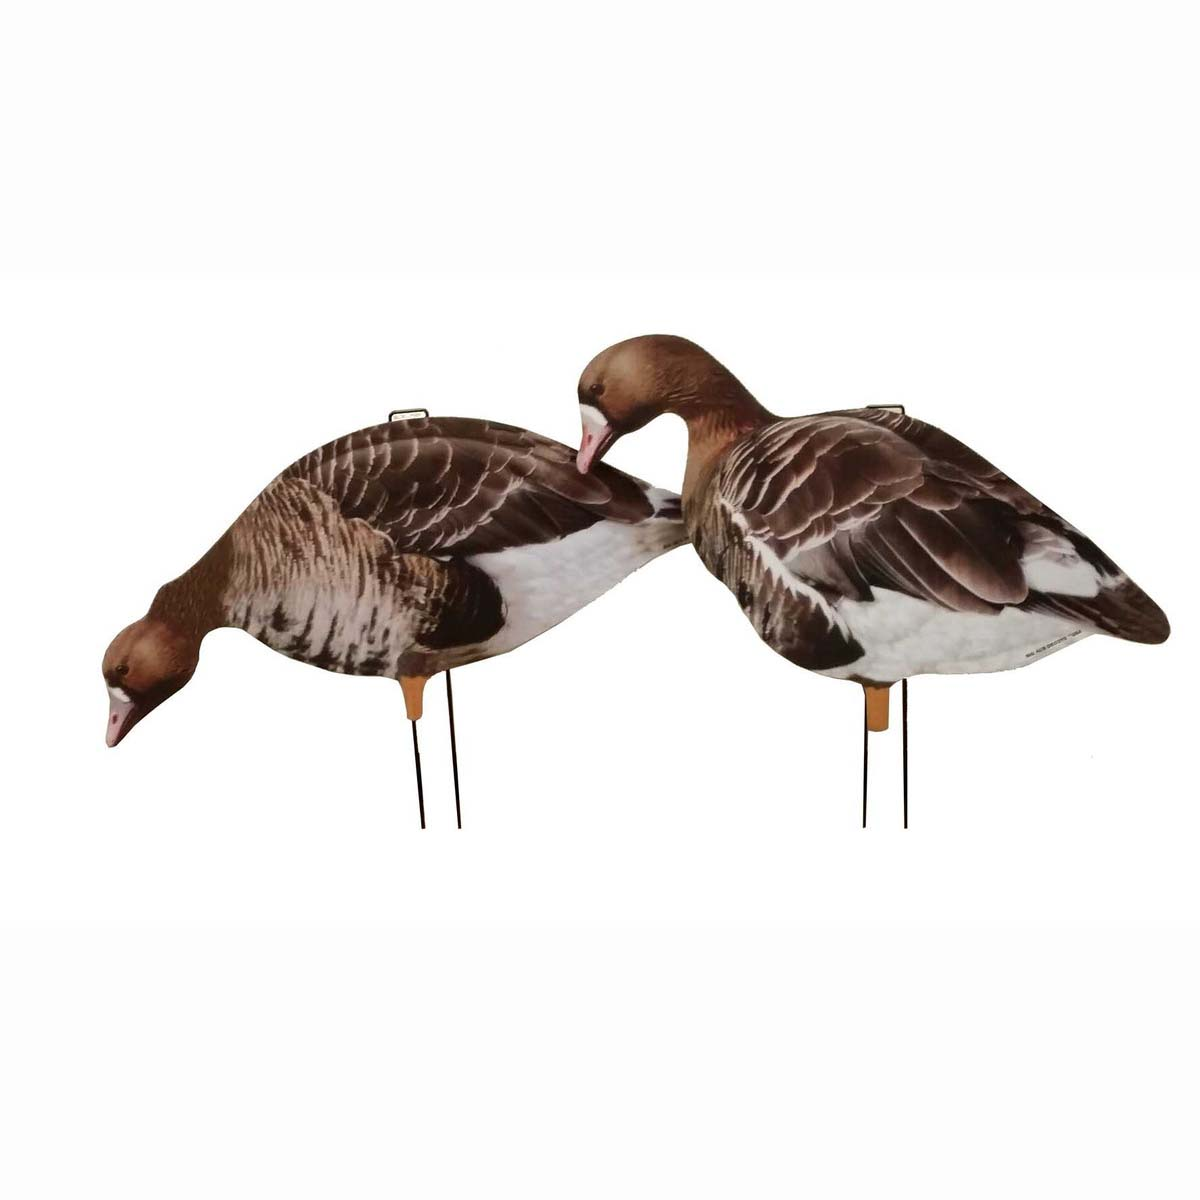 Big Als Decoys 12 Pack of Speck Silhouettes_1.jpg